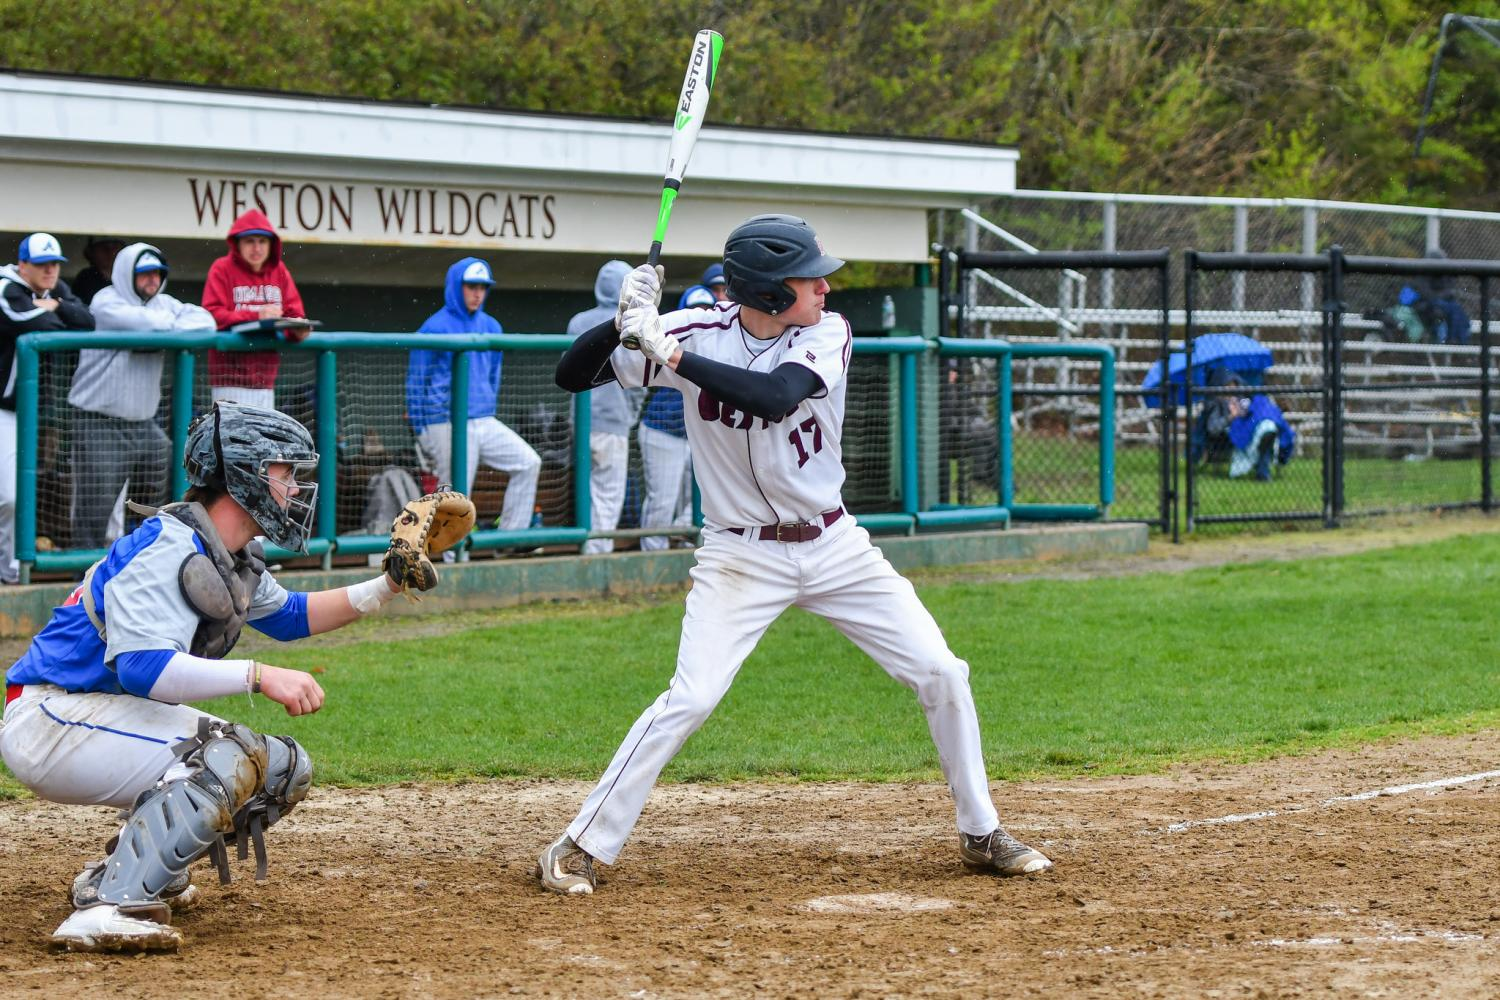 Senior+Max+Barsamian+hit+a+three+run+home+run+against+Ashland.+PHOTO%2F%2FLee+McCanne